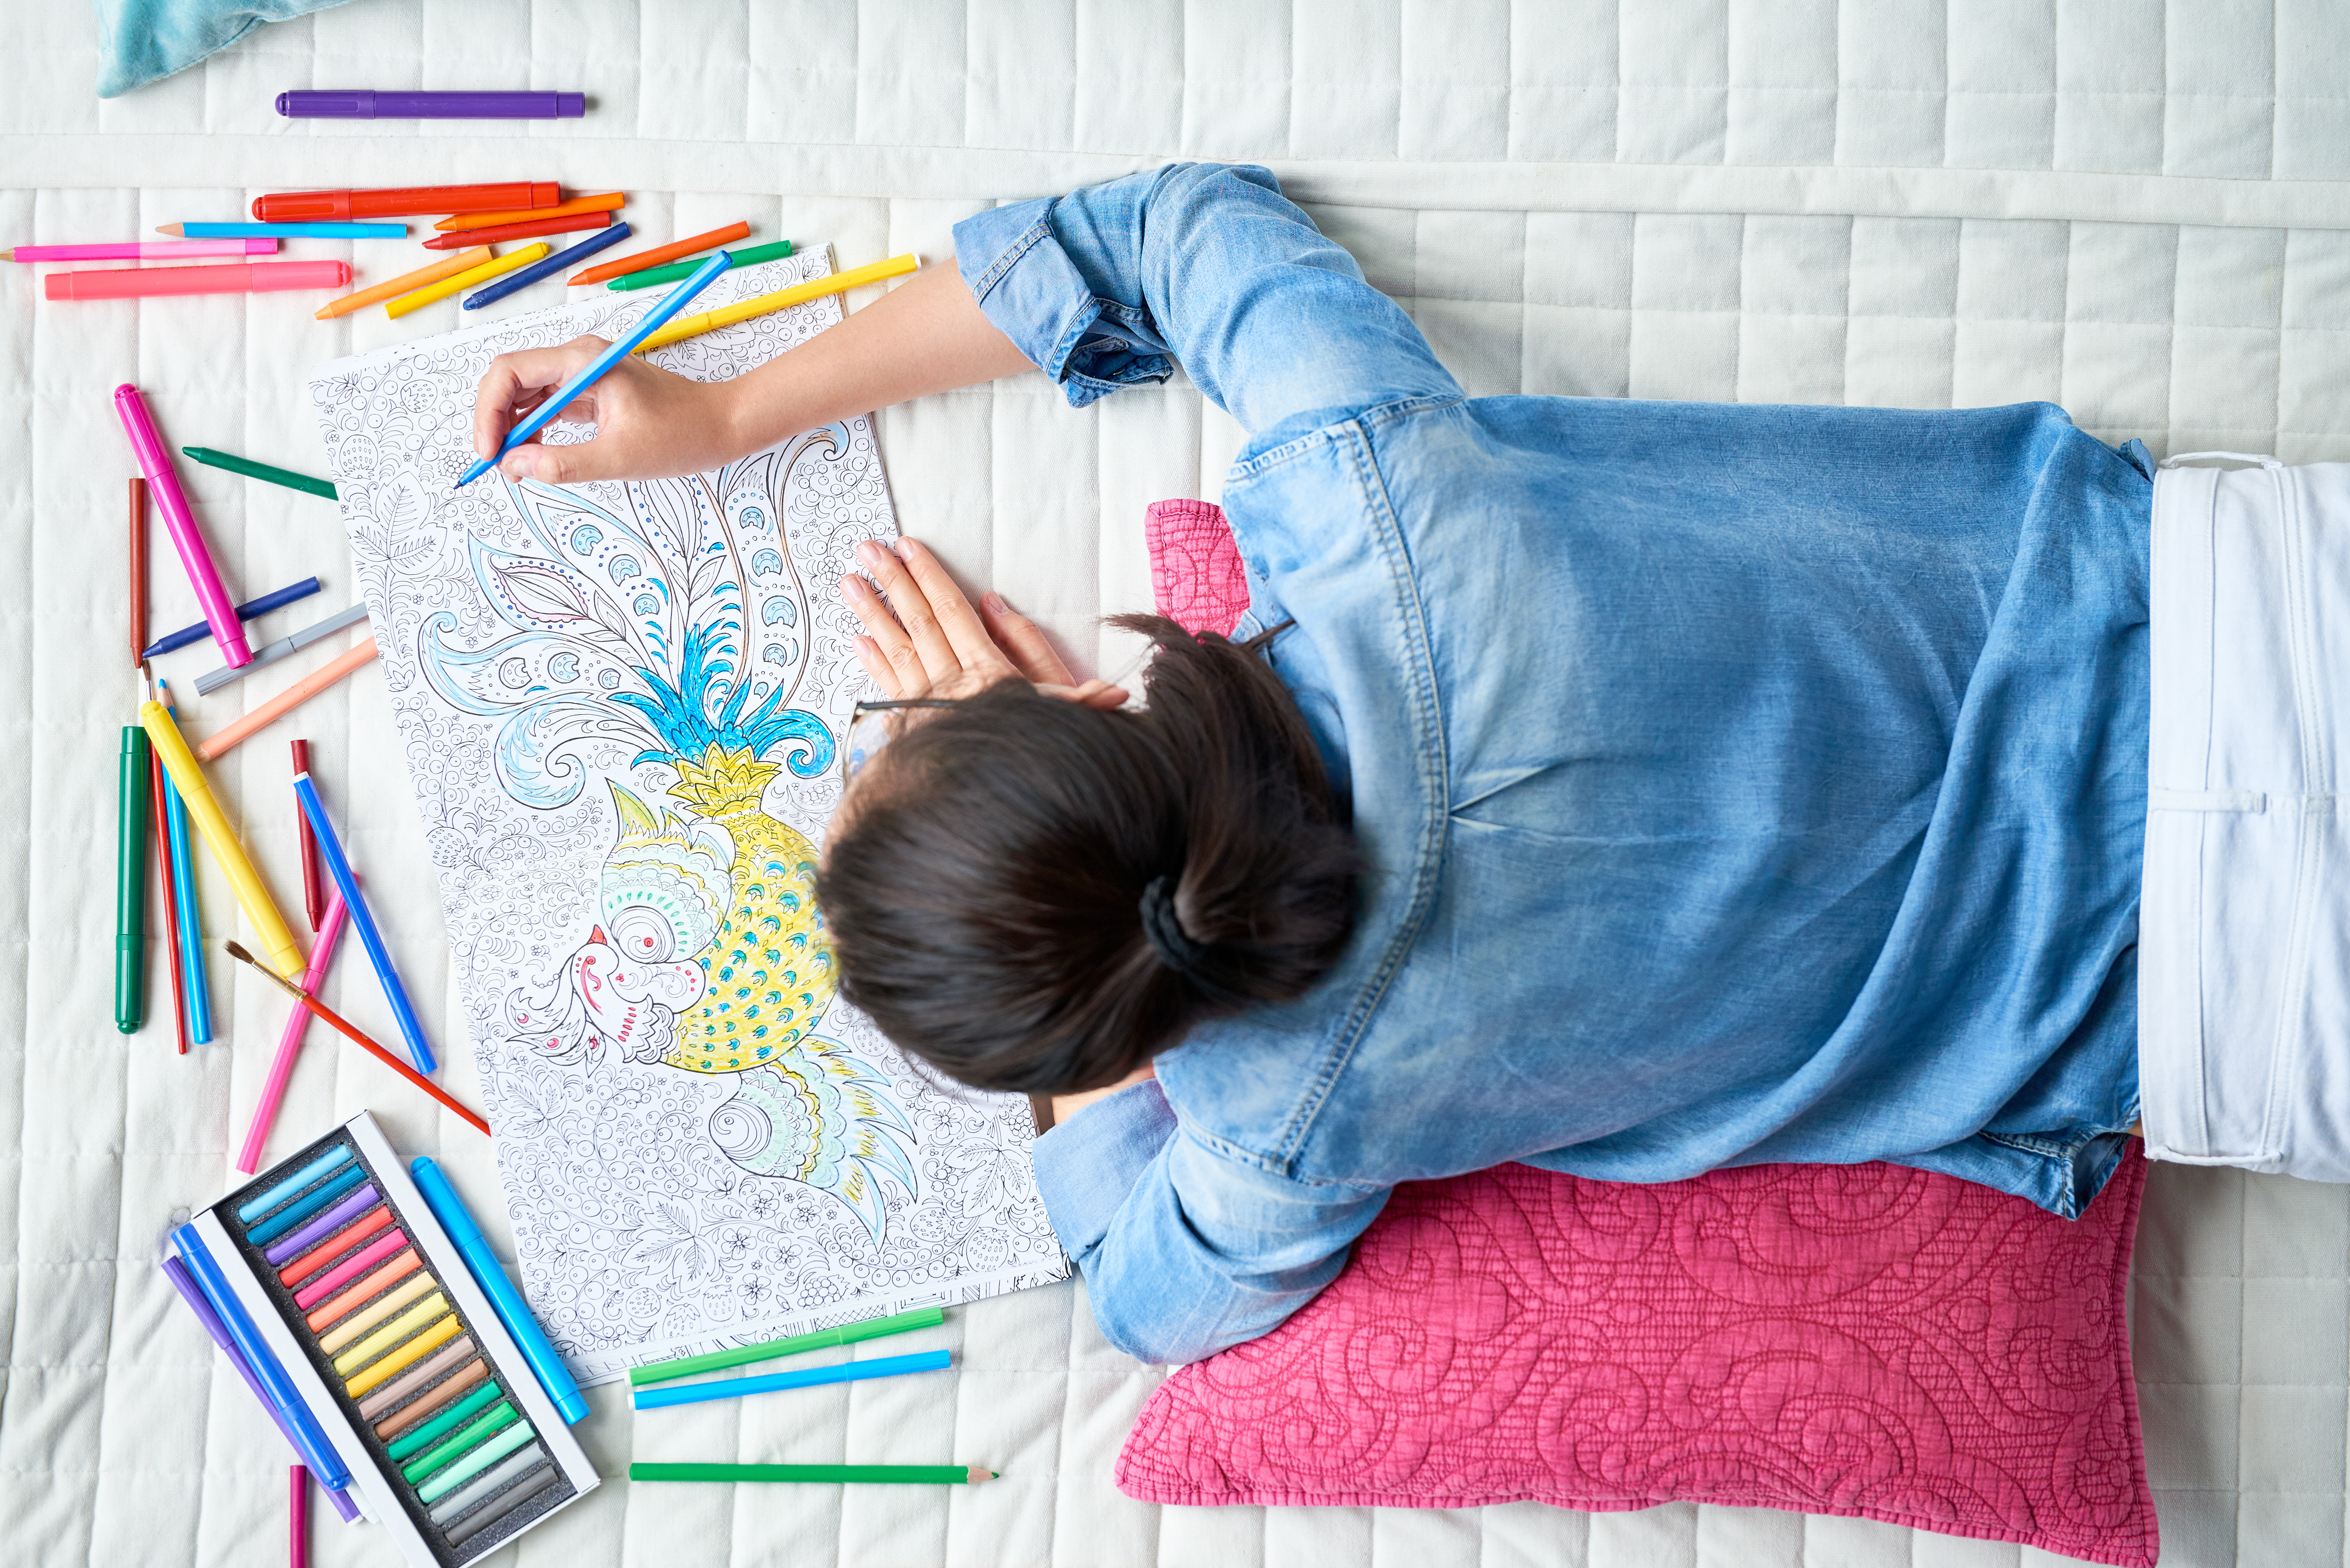 Young woman in jean jacket colors in an adult coloring book on a bed